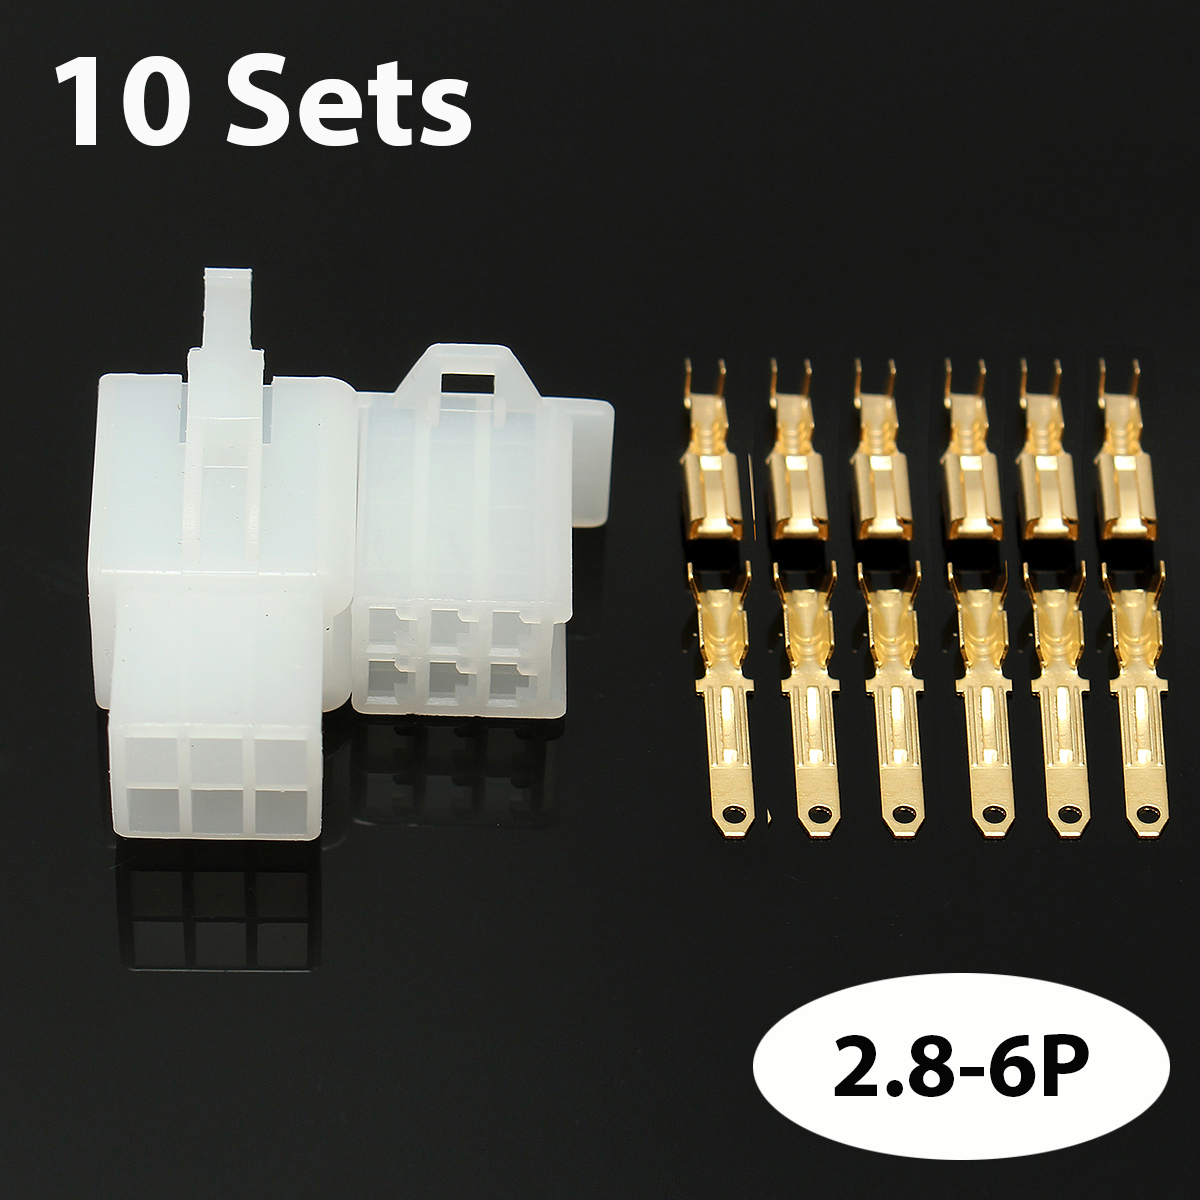 40 Sets Autos Car Motorcycle Electrical 2.8 mm 2 3 4 6 Pin Wire Connector Terminal Connectors